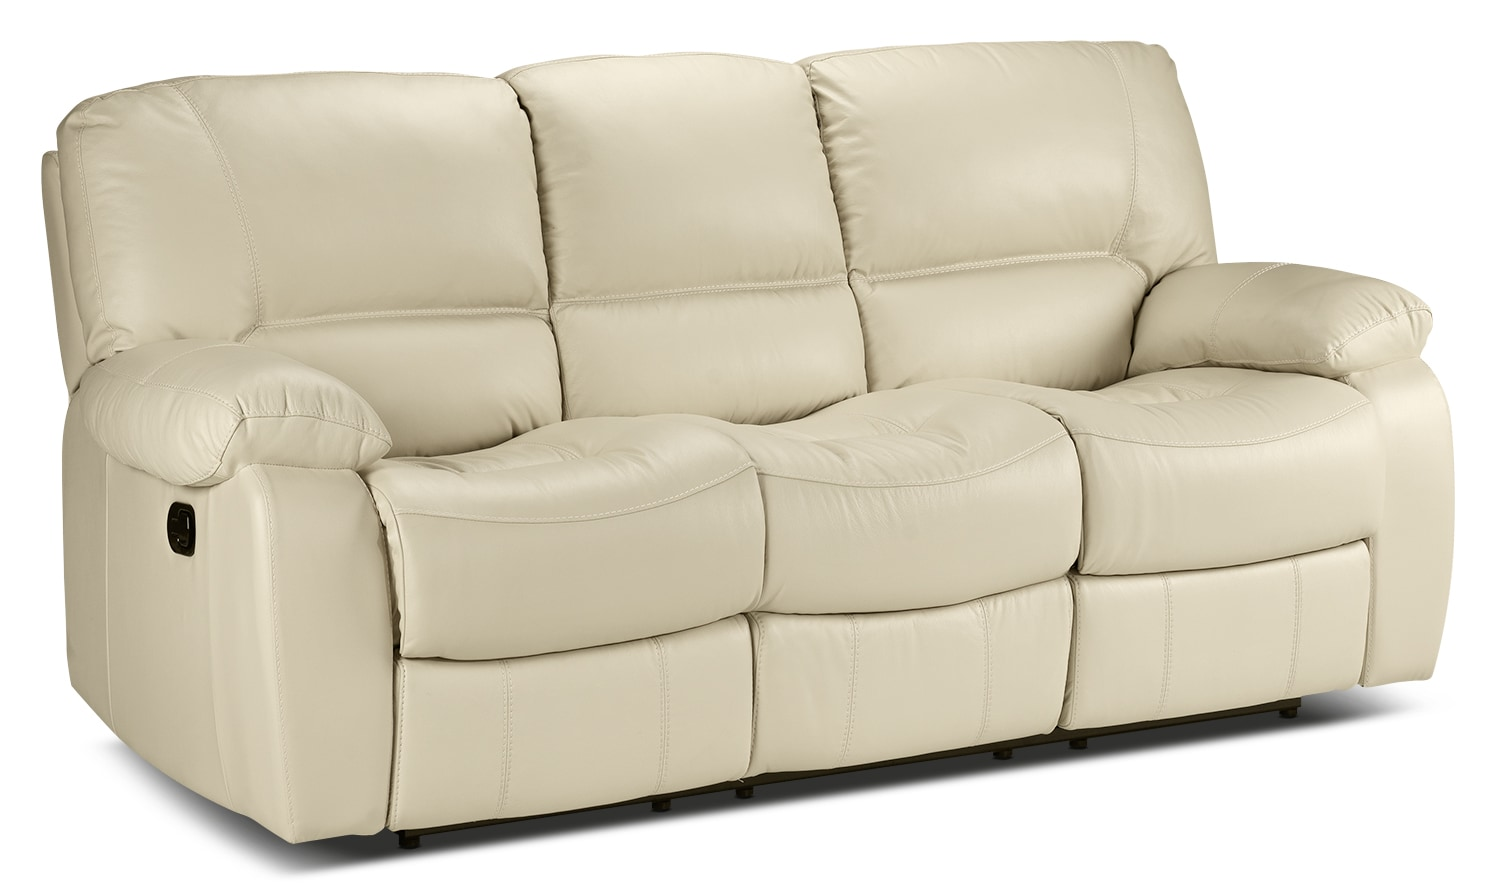 Piermont Reclining Sofa - Bisque